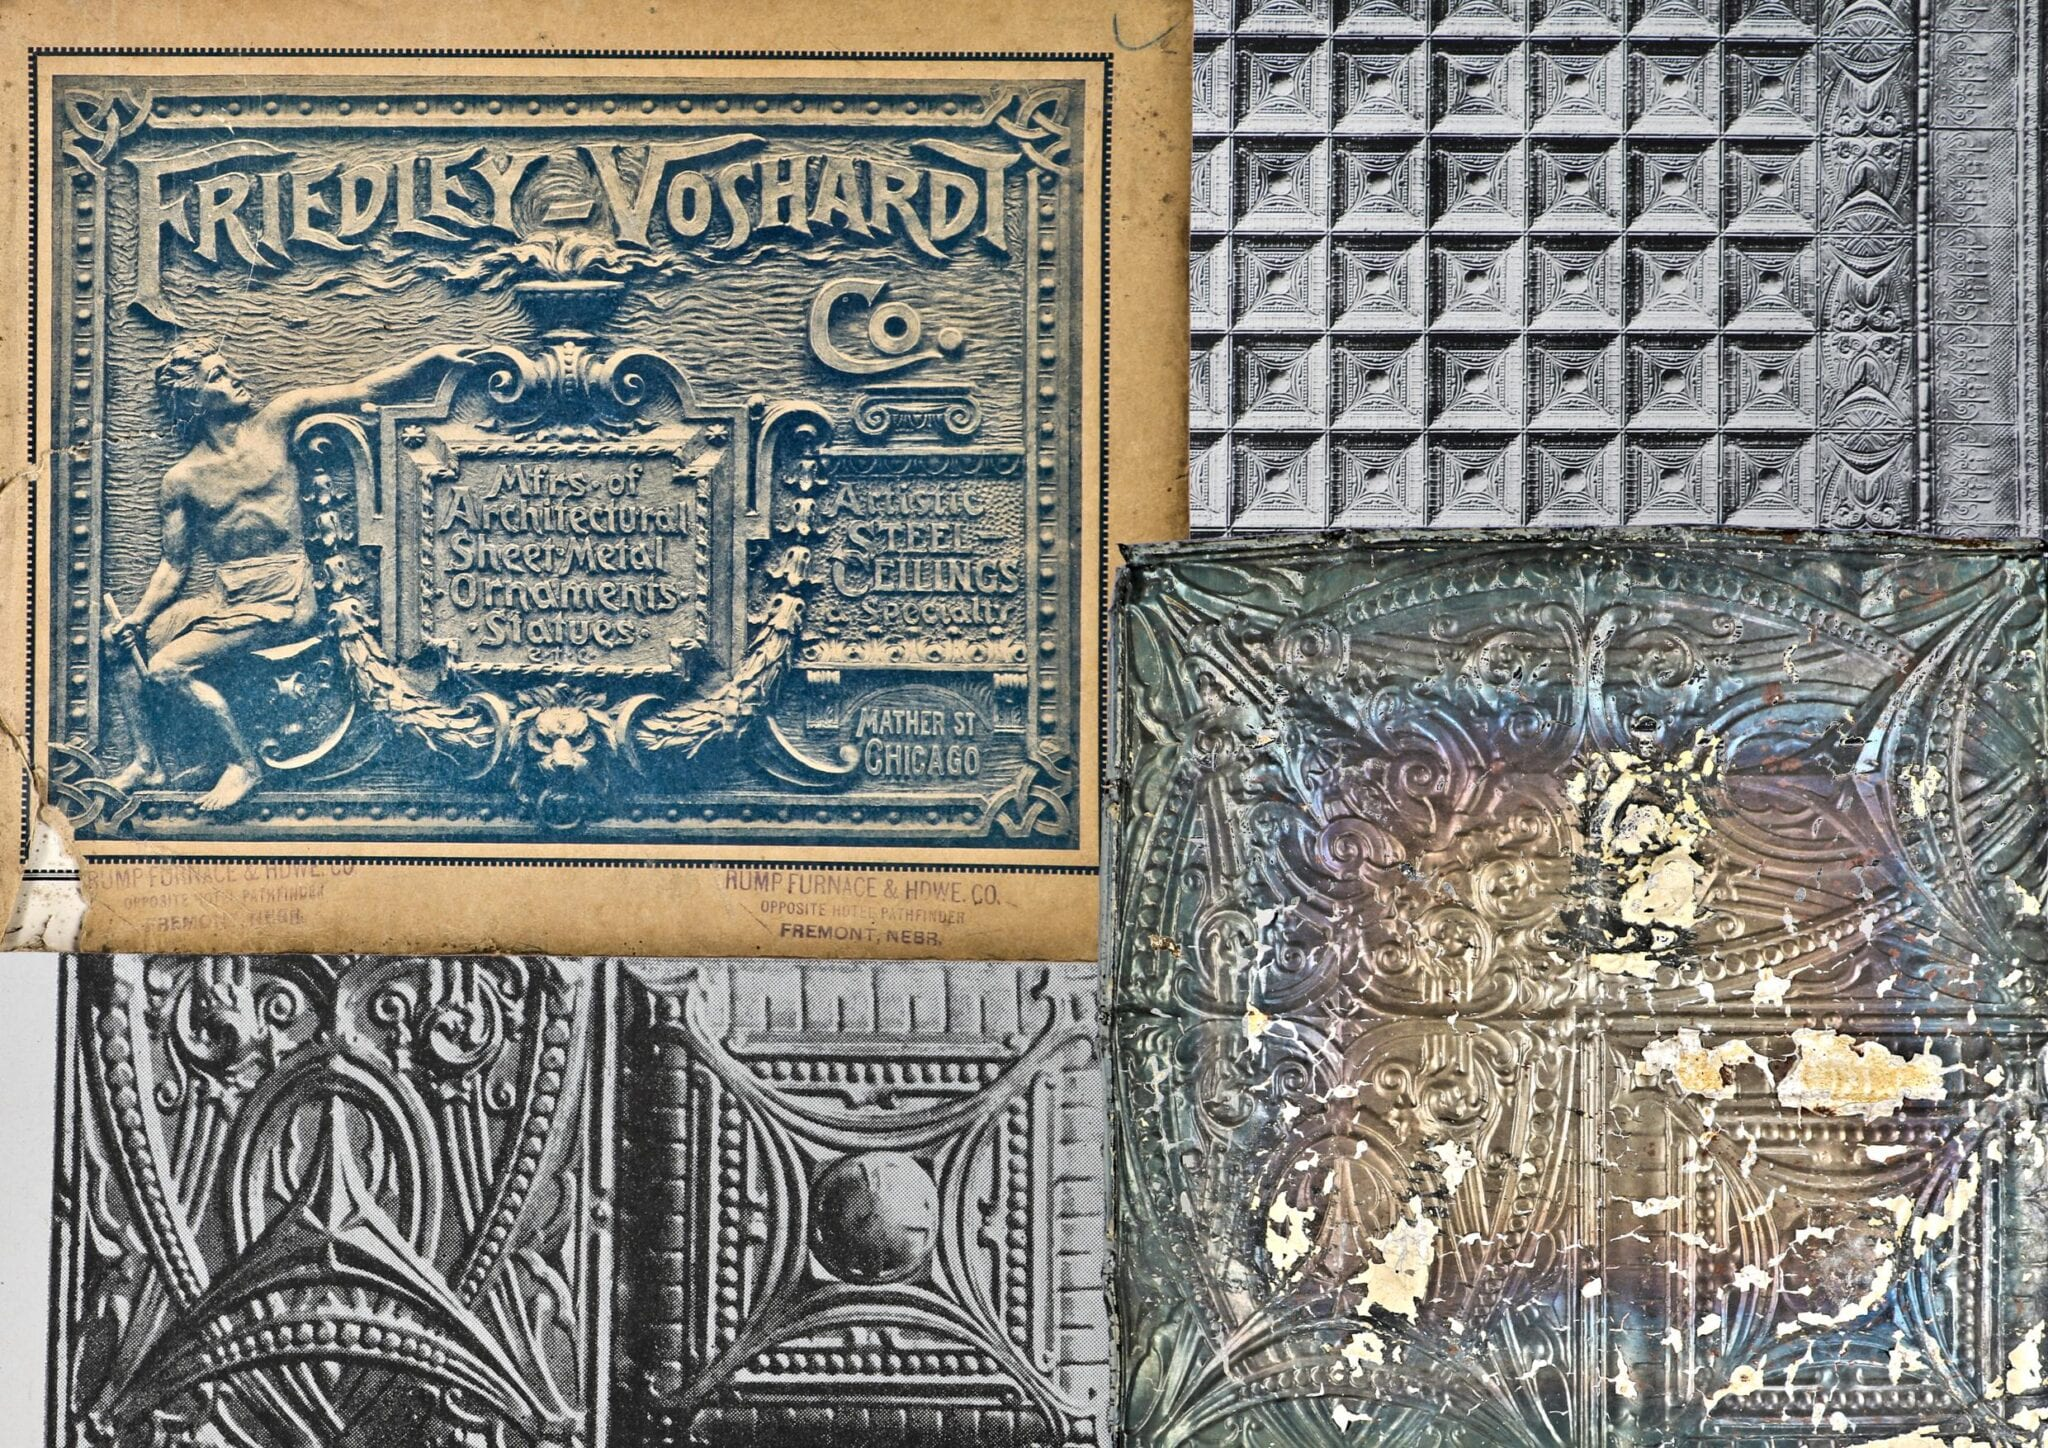 Come Across A Catalog That Definitively Identifies The Fabricator Behind Small Collection Of Stamped Steel Or Tin Sullivanesque Style Ceiling Panels